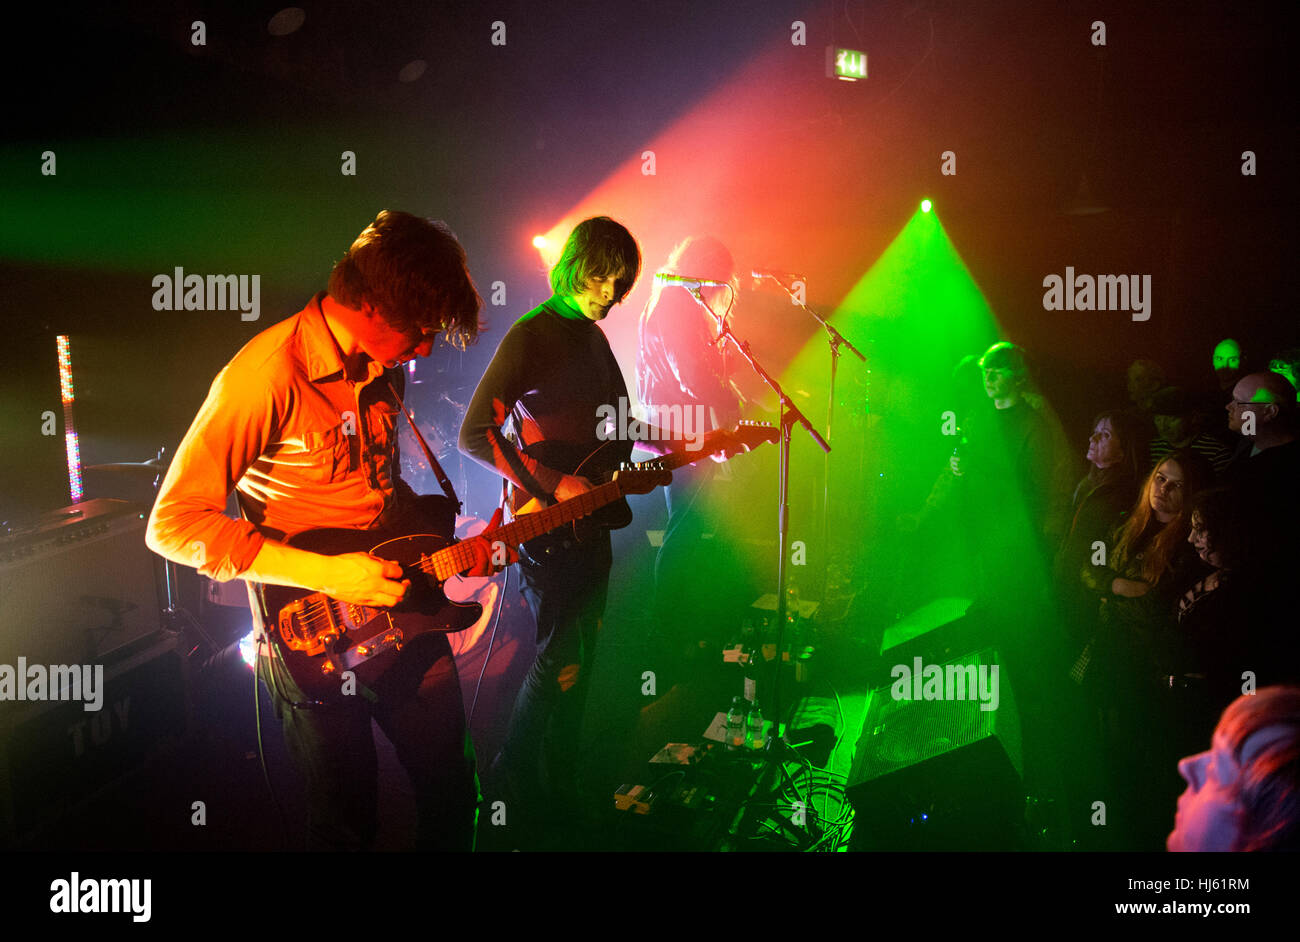 Hebden Bridge, UK. 21st January, 2017. Psychedelic rock band Toy in concert at The Trades Club, Hebden Bridge, West - Stock Image